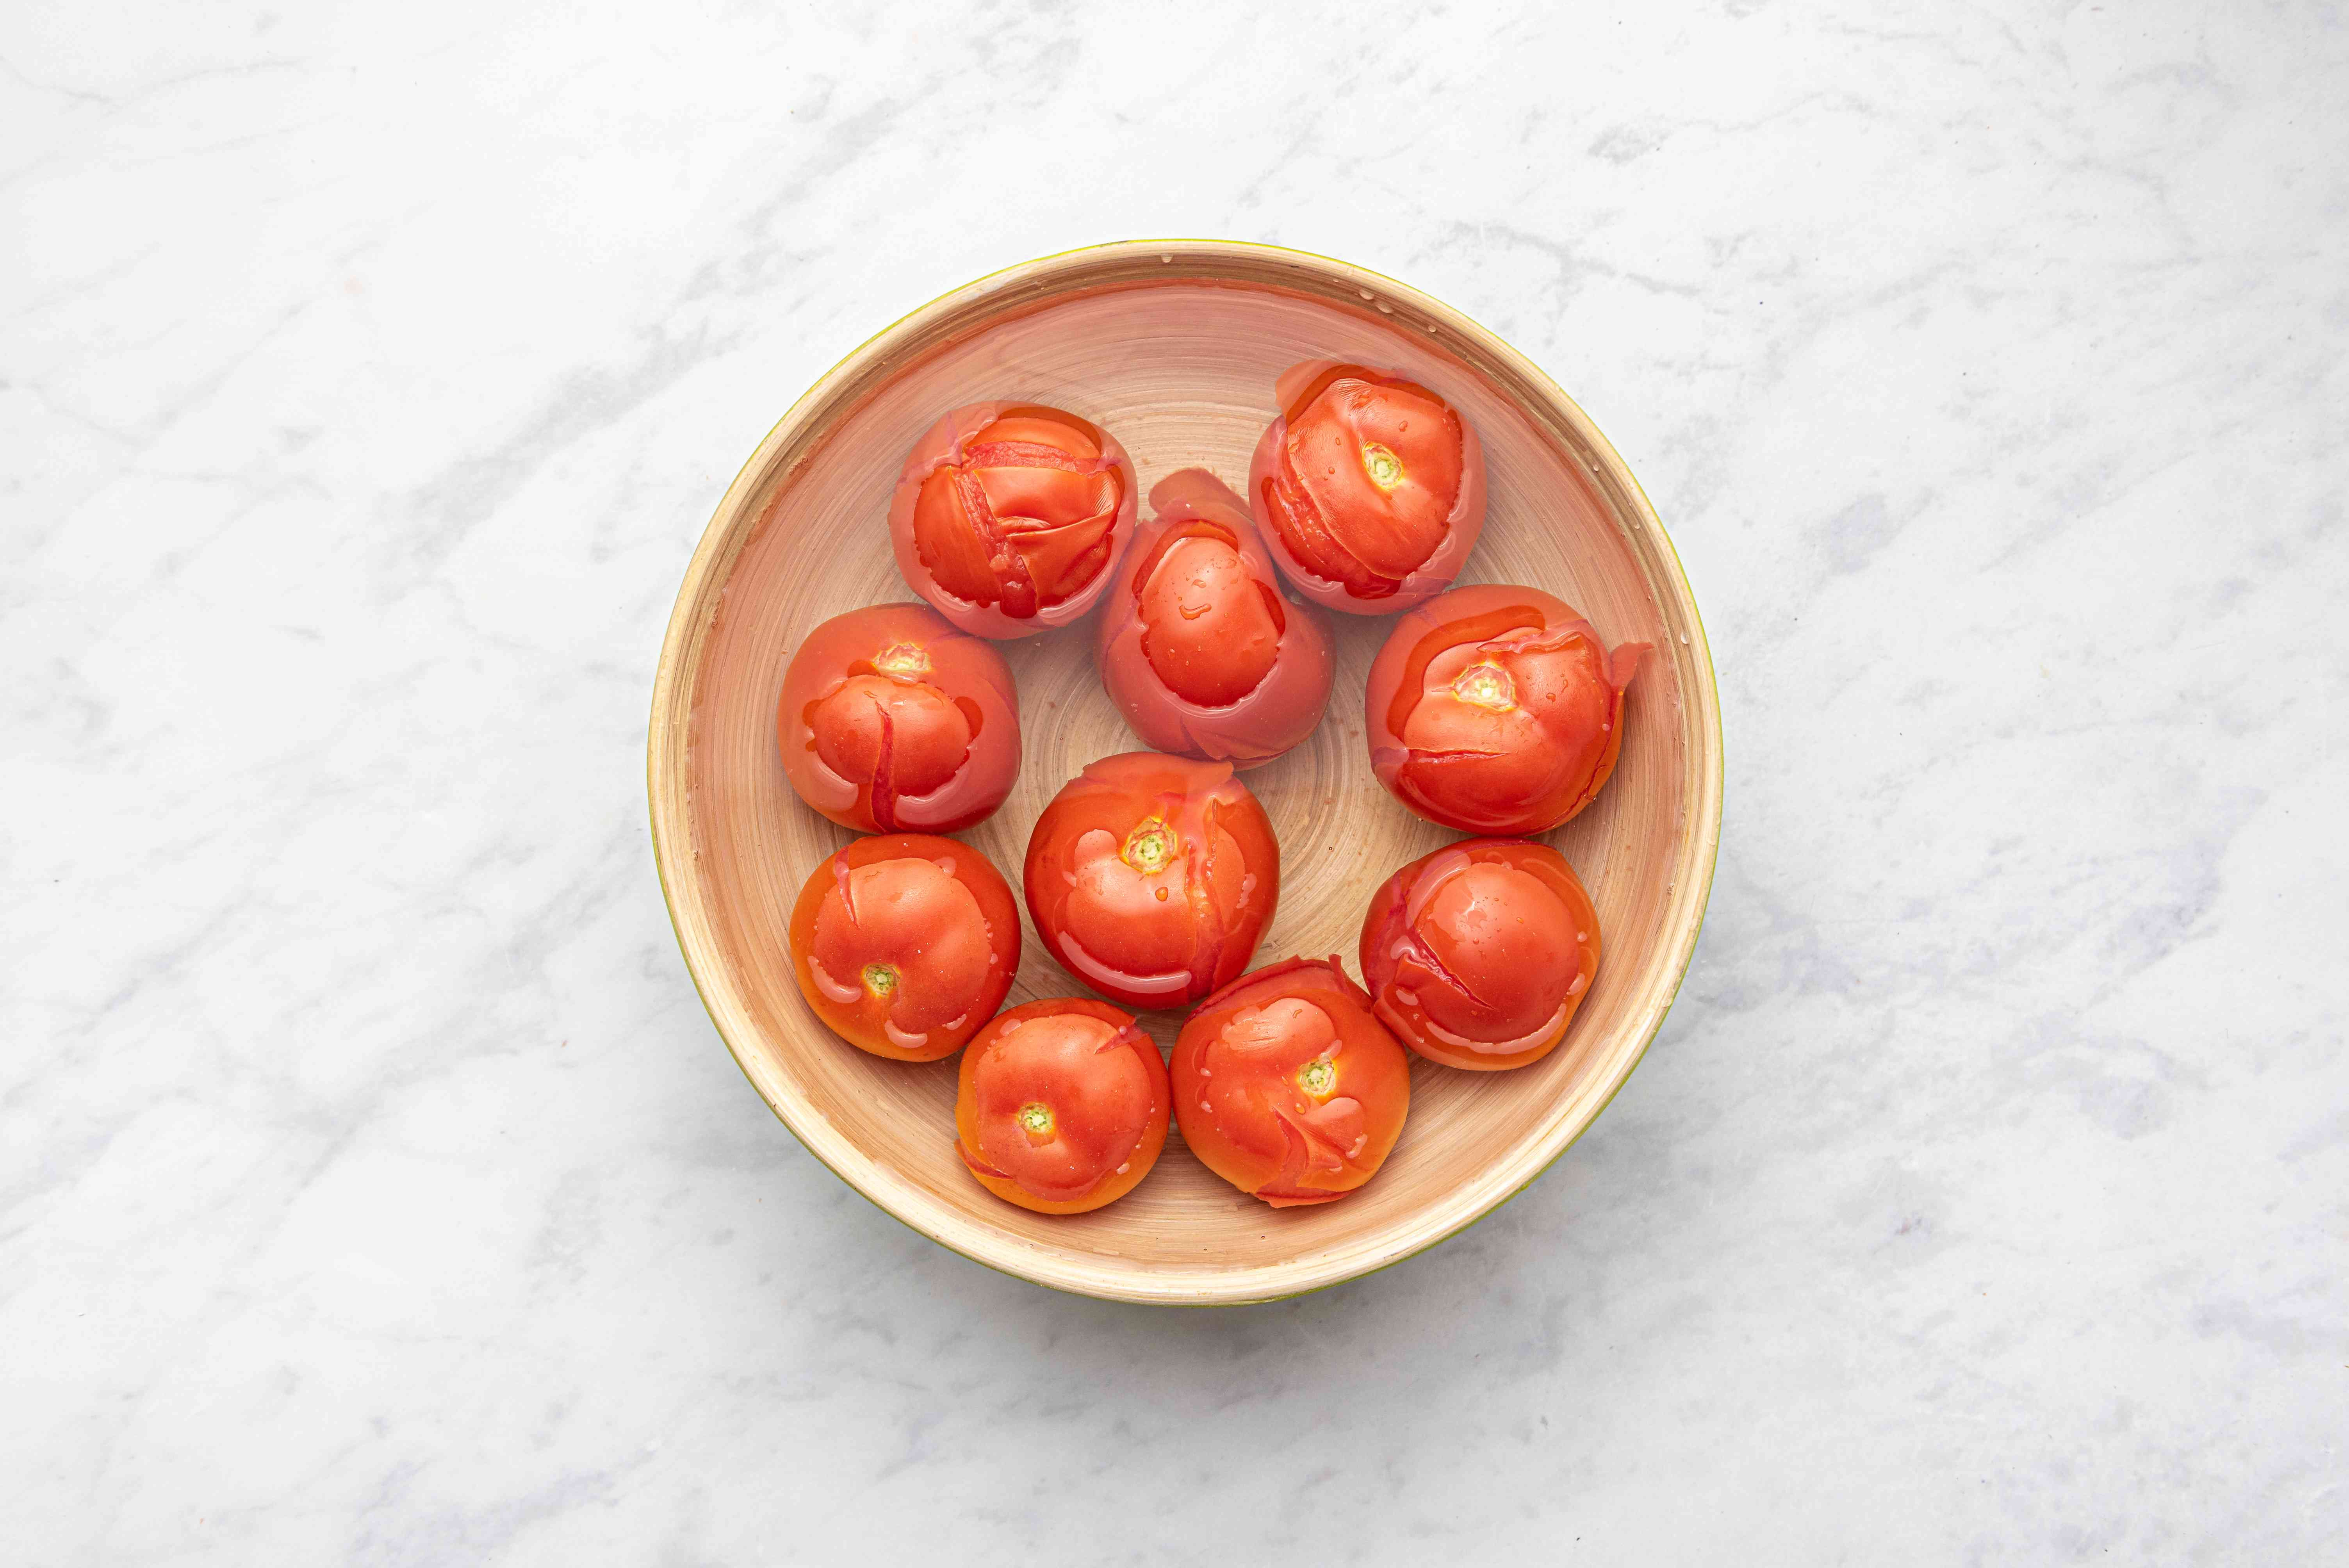 Tomatoes in a bowl of ice water